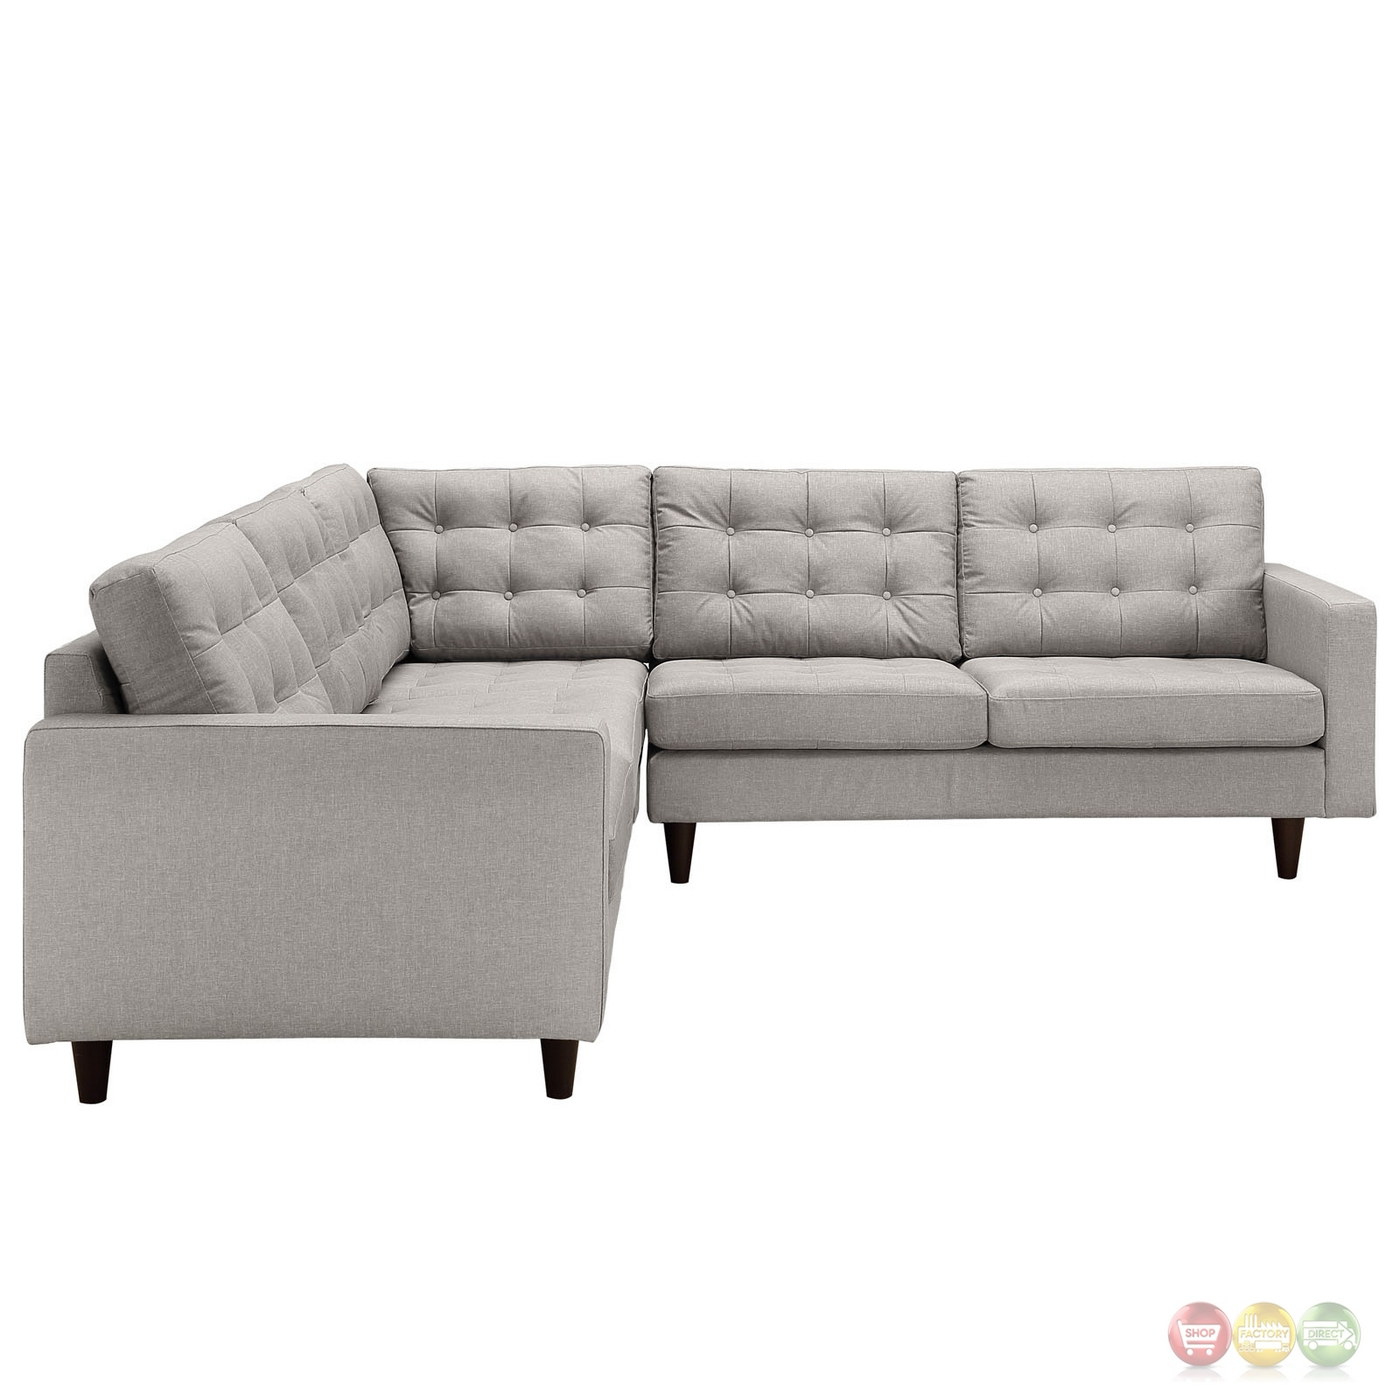 Empress 3 piece button tufted upholstered sectional sofa for Tufted couch set